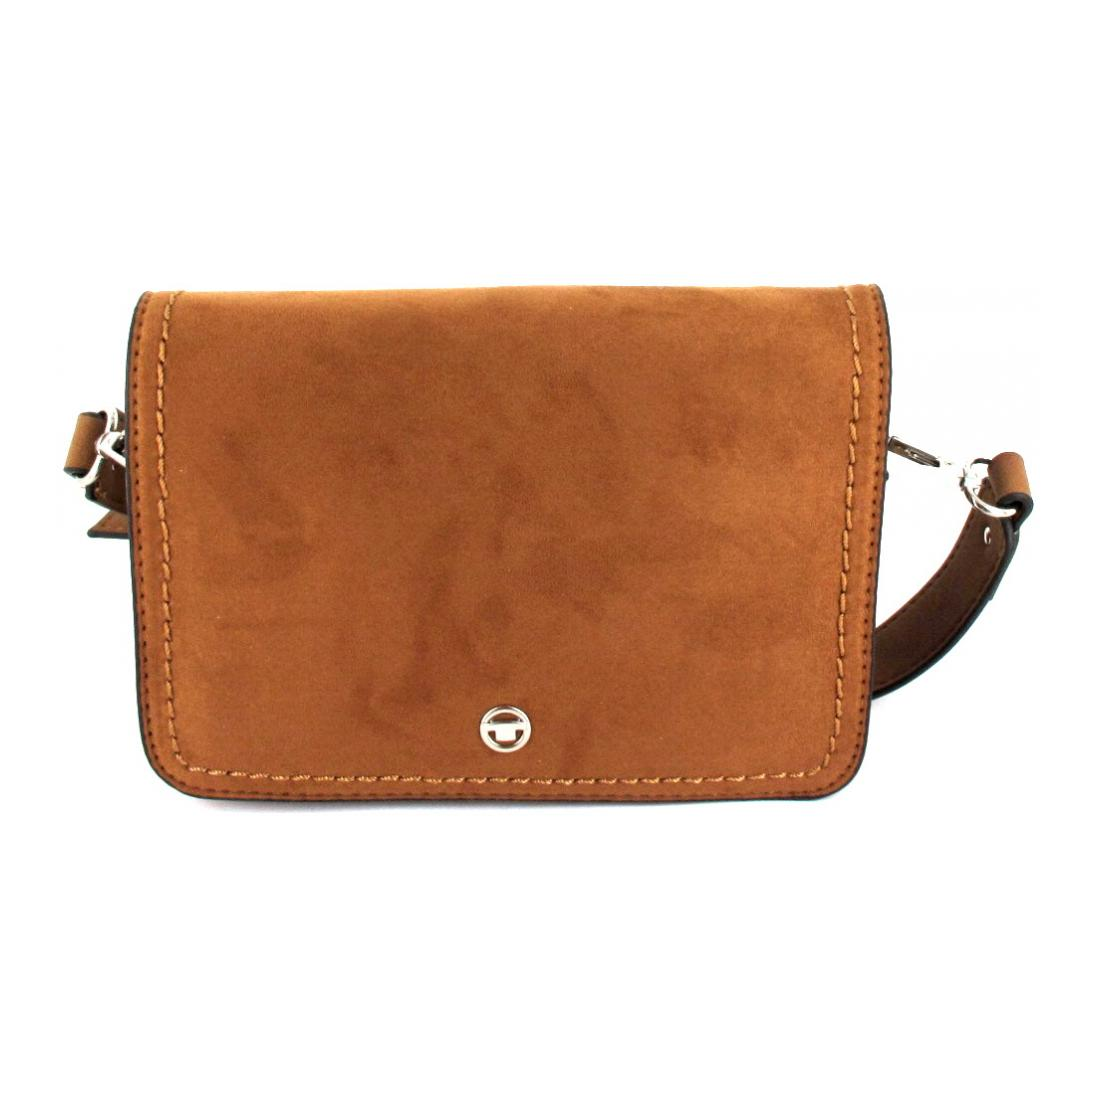 Tom Tailor Tasche Firenze Flap bag